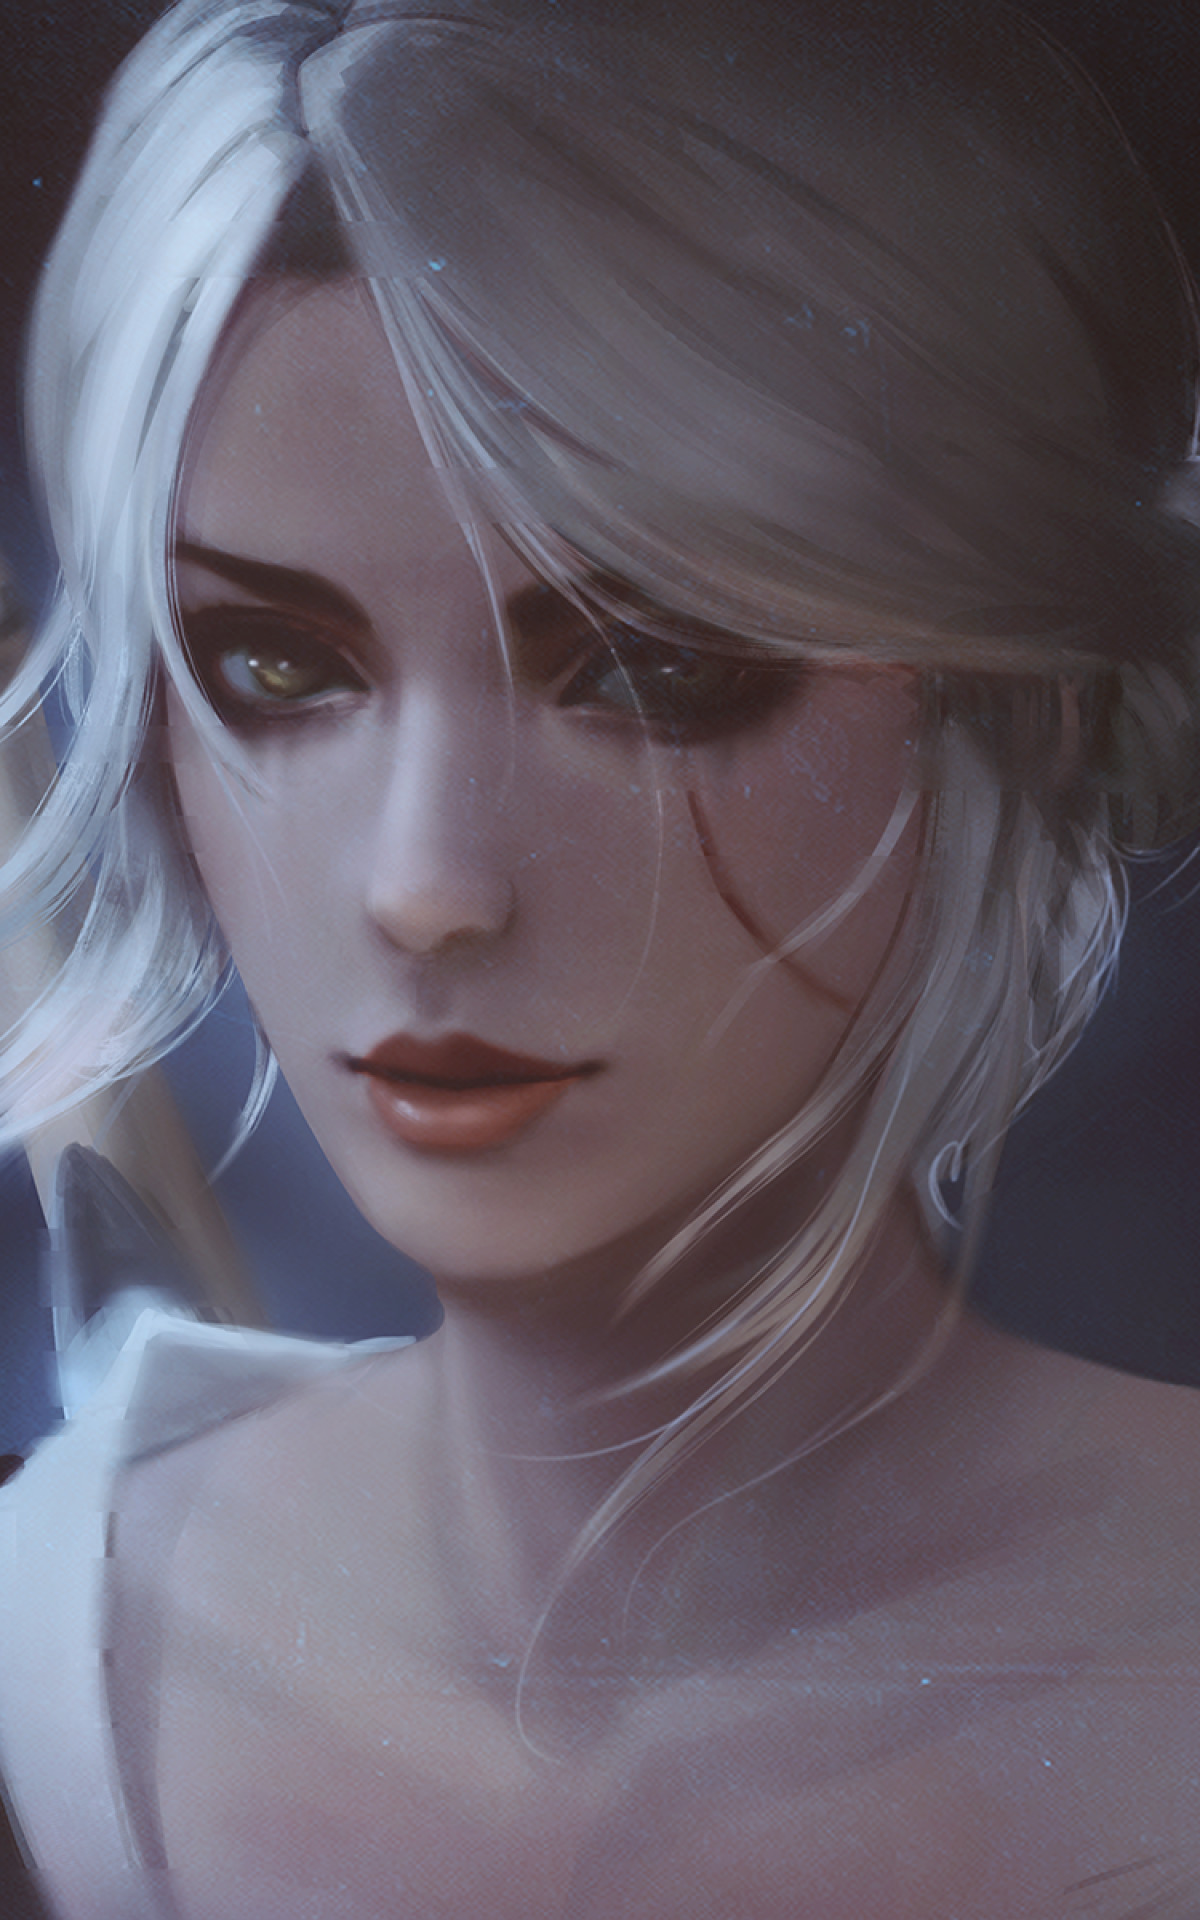 … Portrait Wallpapers. The Witcher 3:wild Hunter, Cirilla Fiona, Scar,  Silver Hair, Face